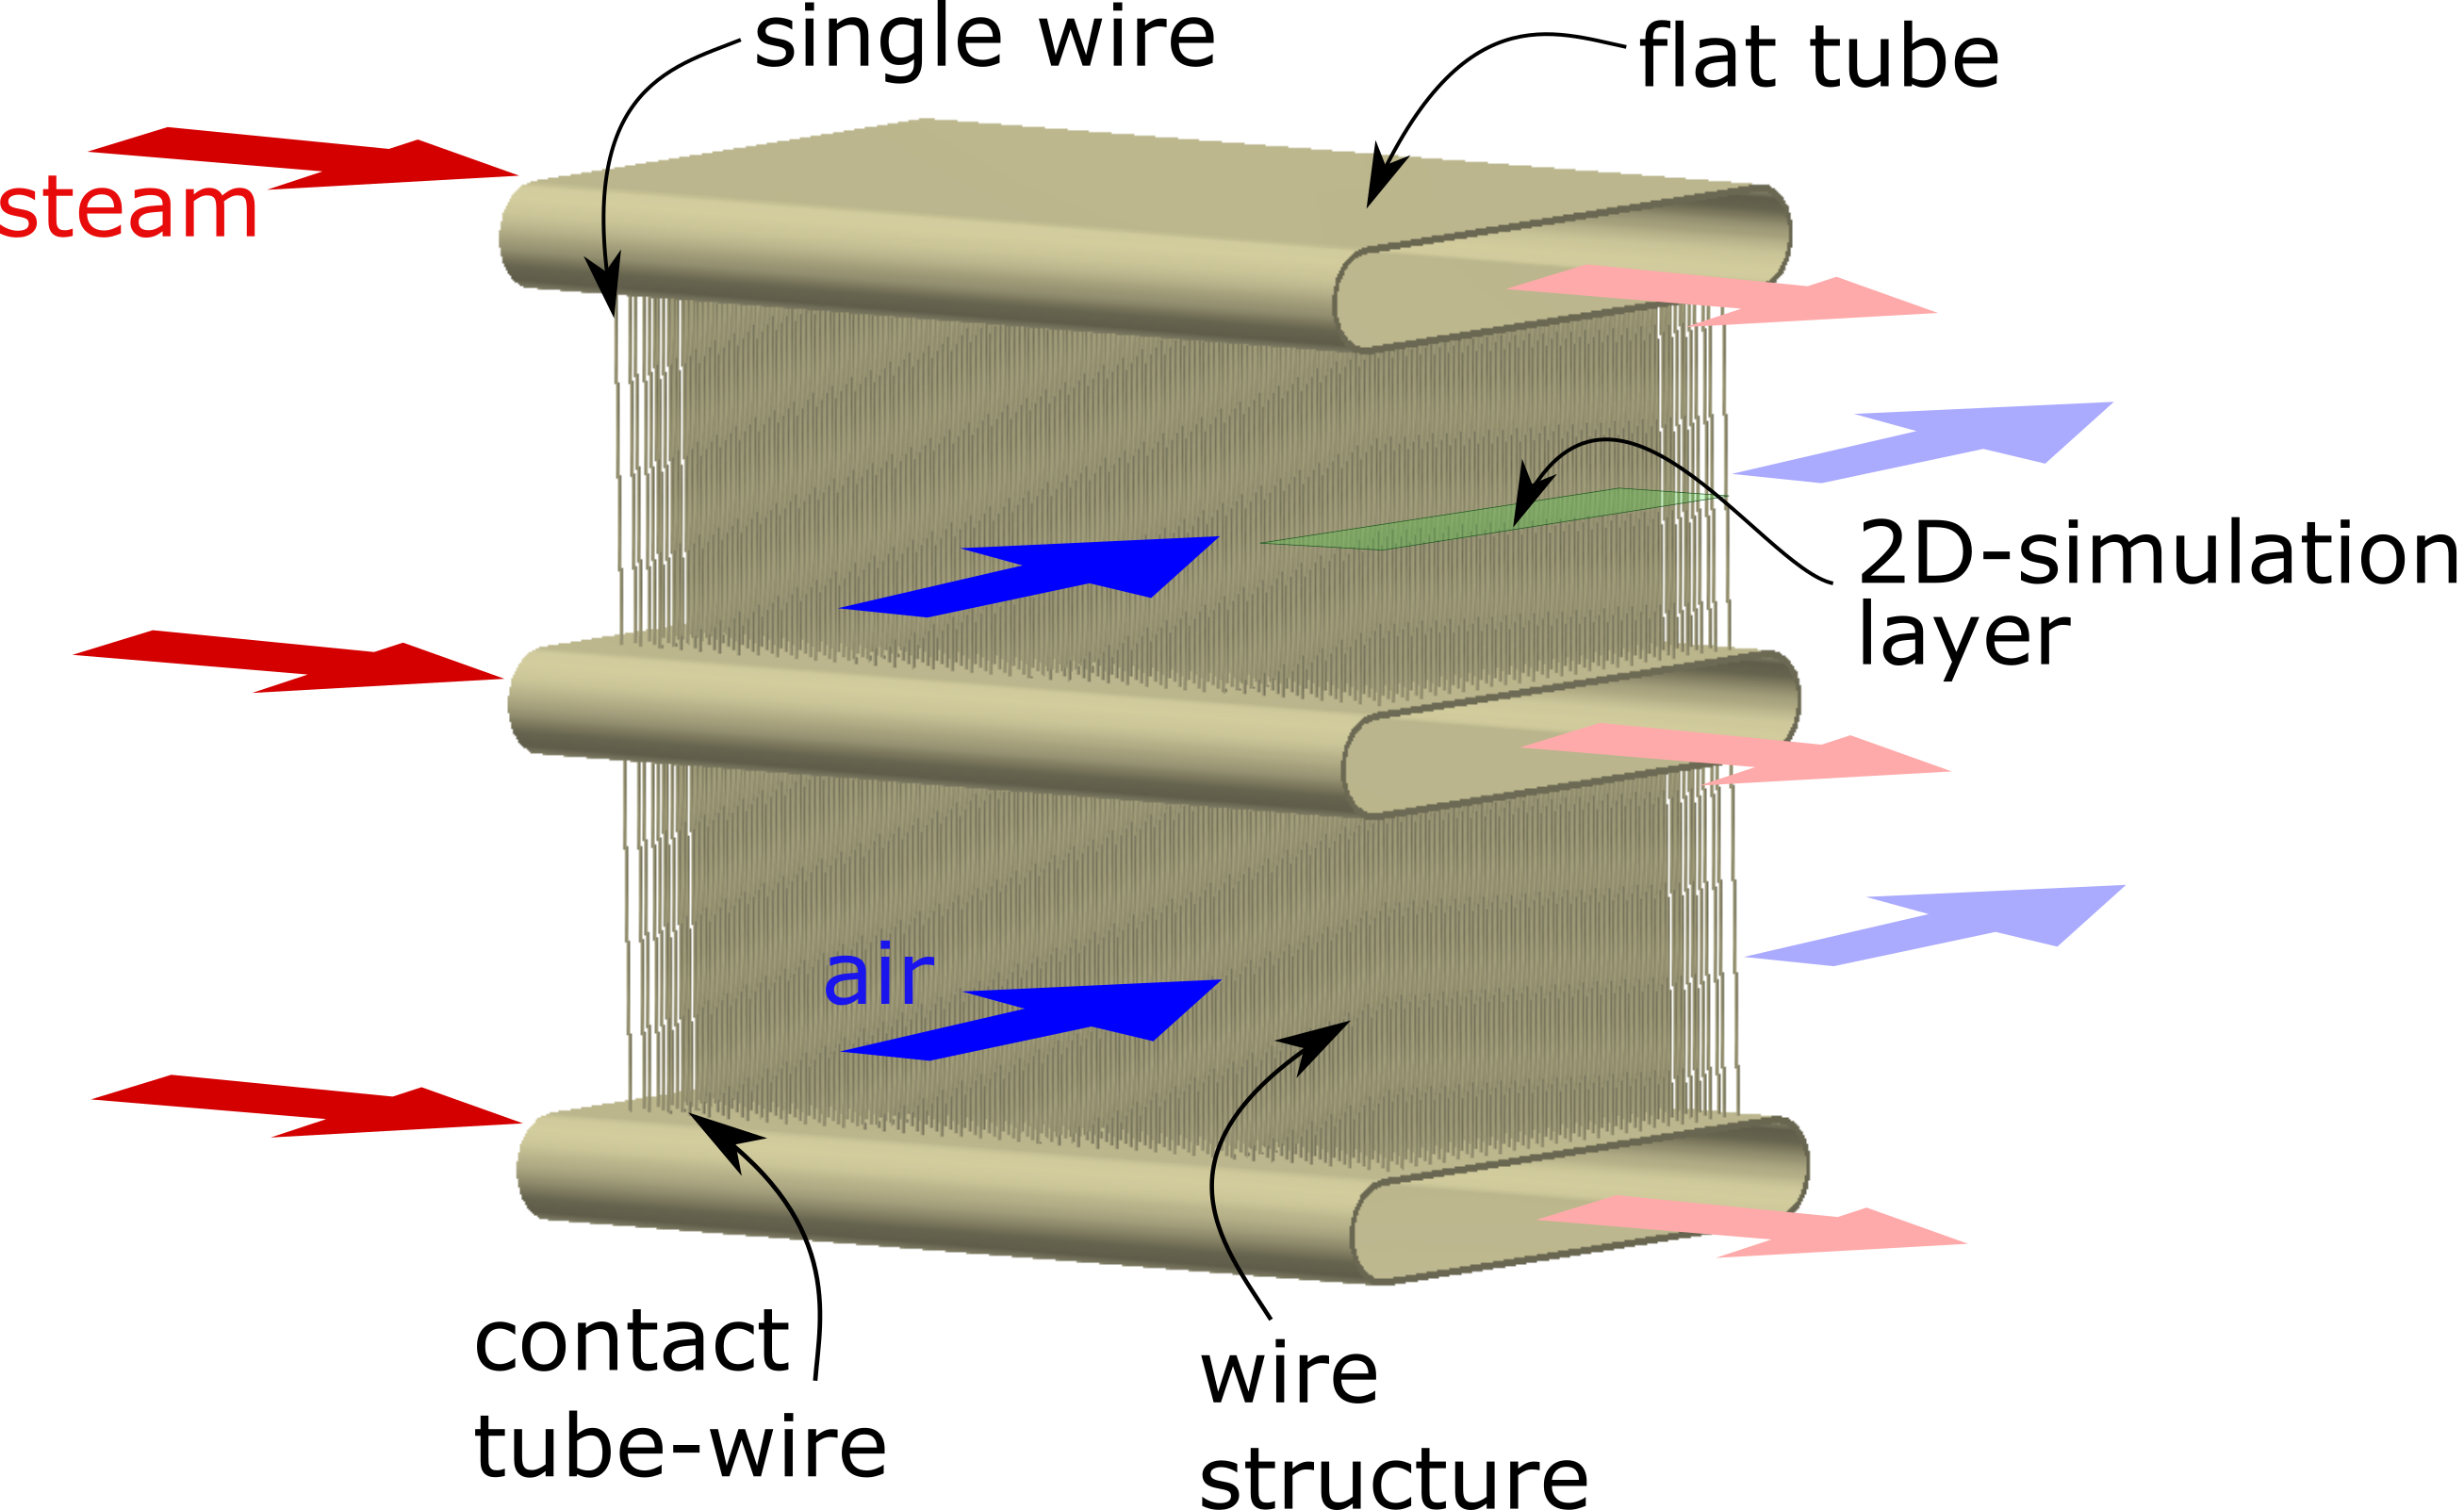 Figure 1: Wire structure embedded between flat tubes